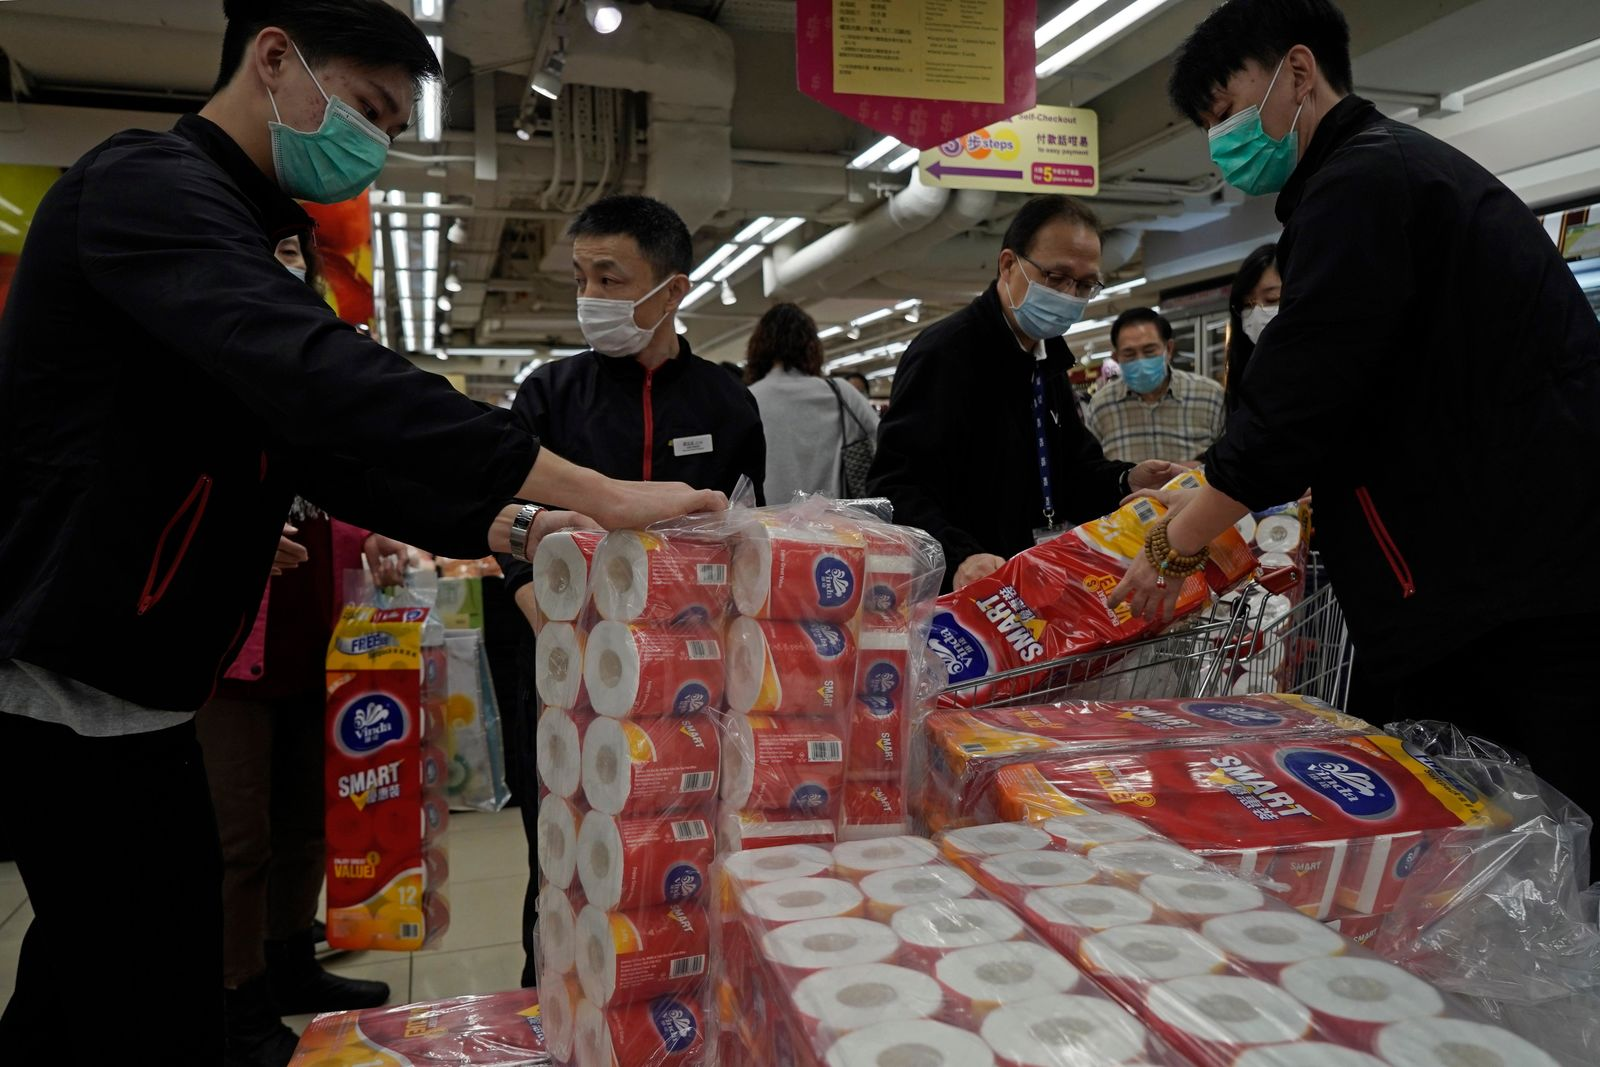 Customers queue to buy supplies of toilet paper in a supermarket in Hong Kong, Friday, Feb. 14, 2020. China on Friday reported another sharp rise in the number of people infected with a new virus, as the death toll neared 1,400. (AP Photo/Kin Cheung)